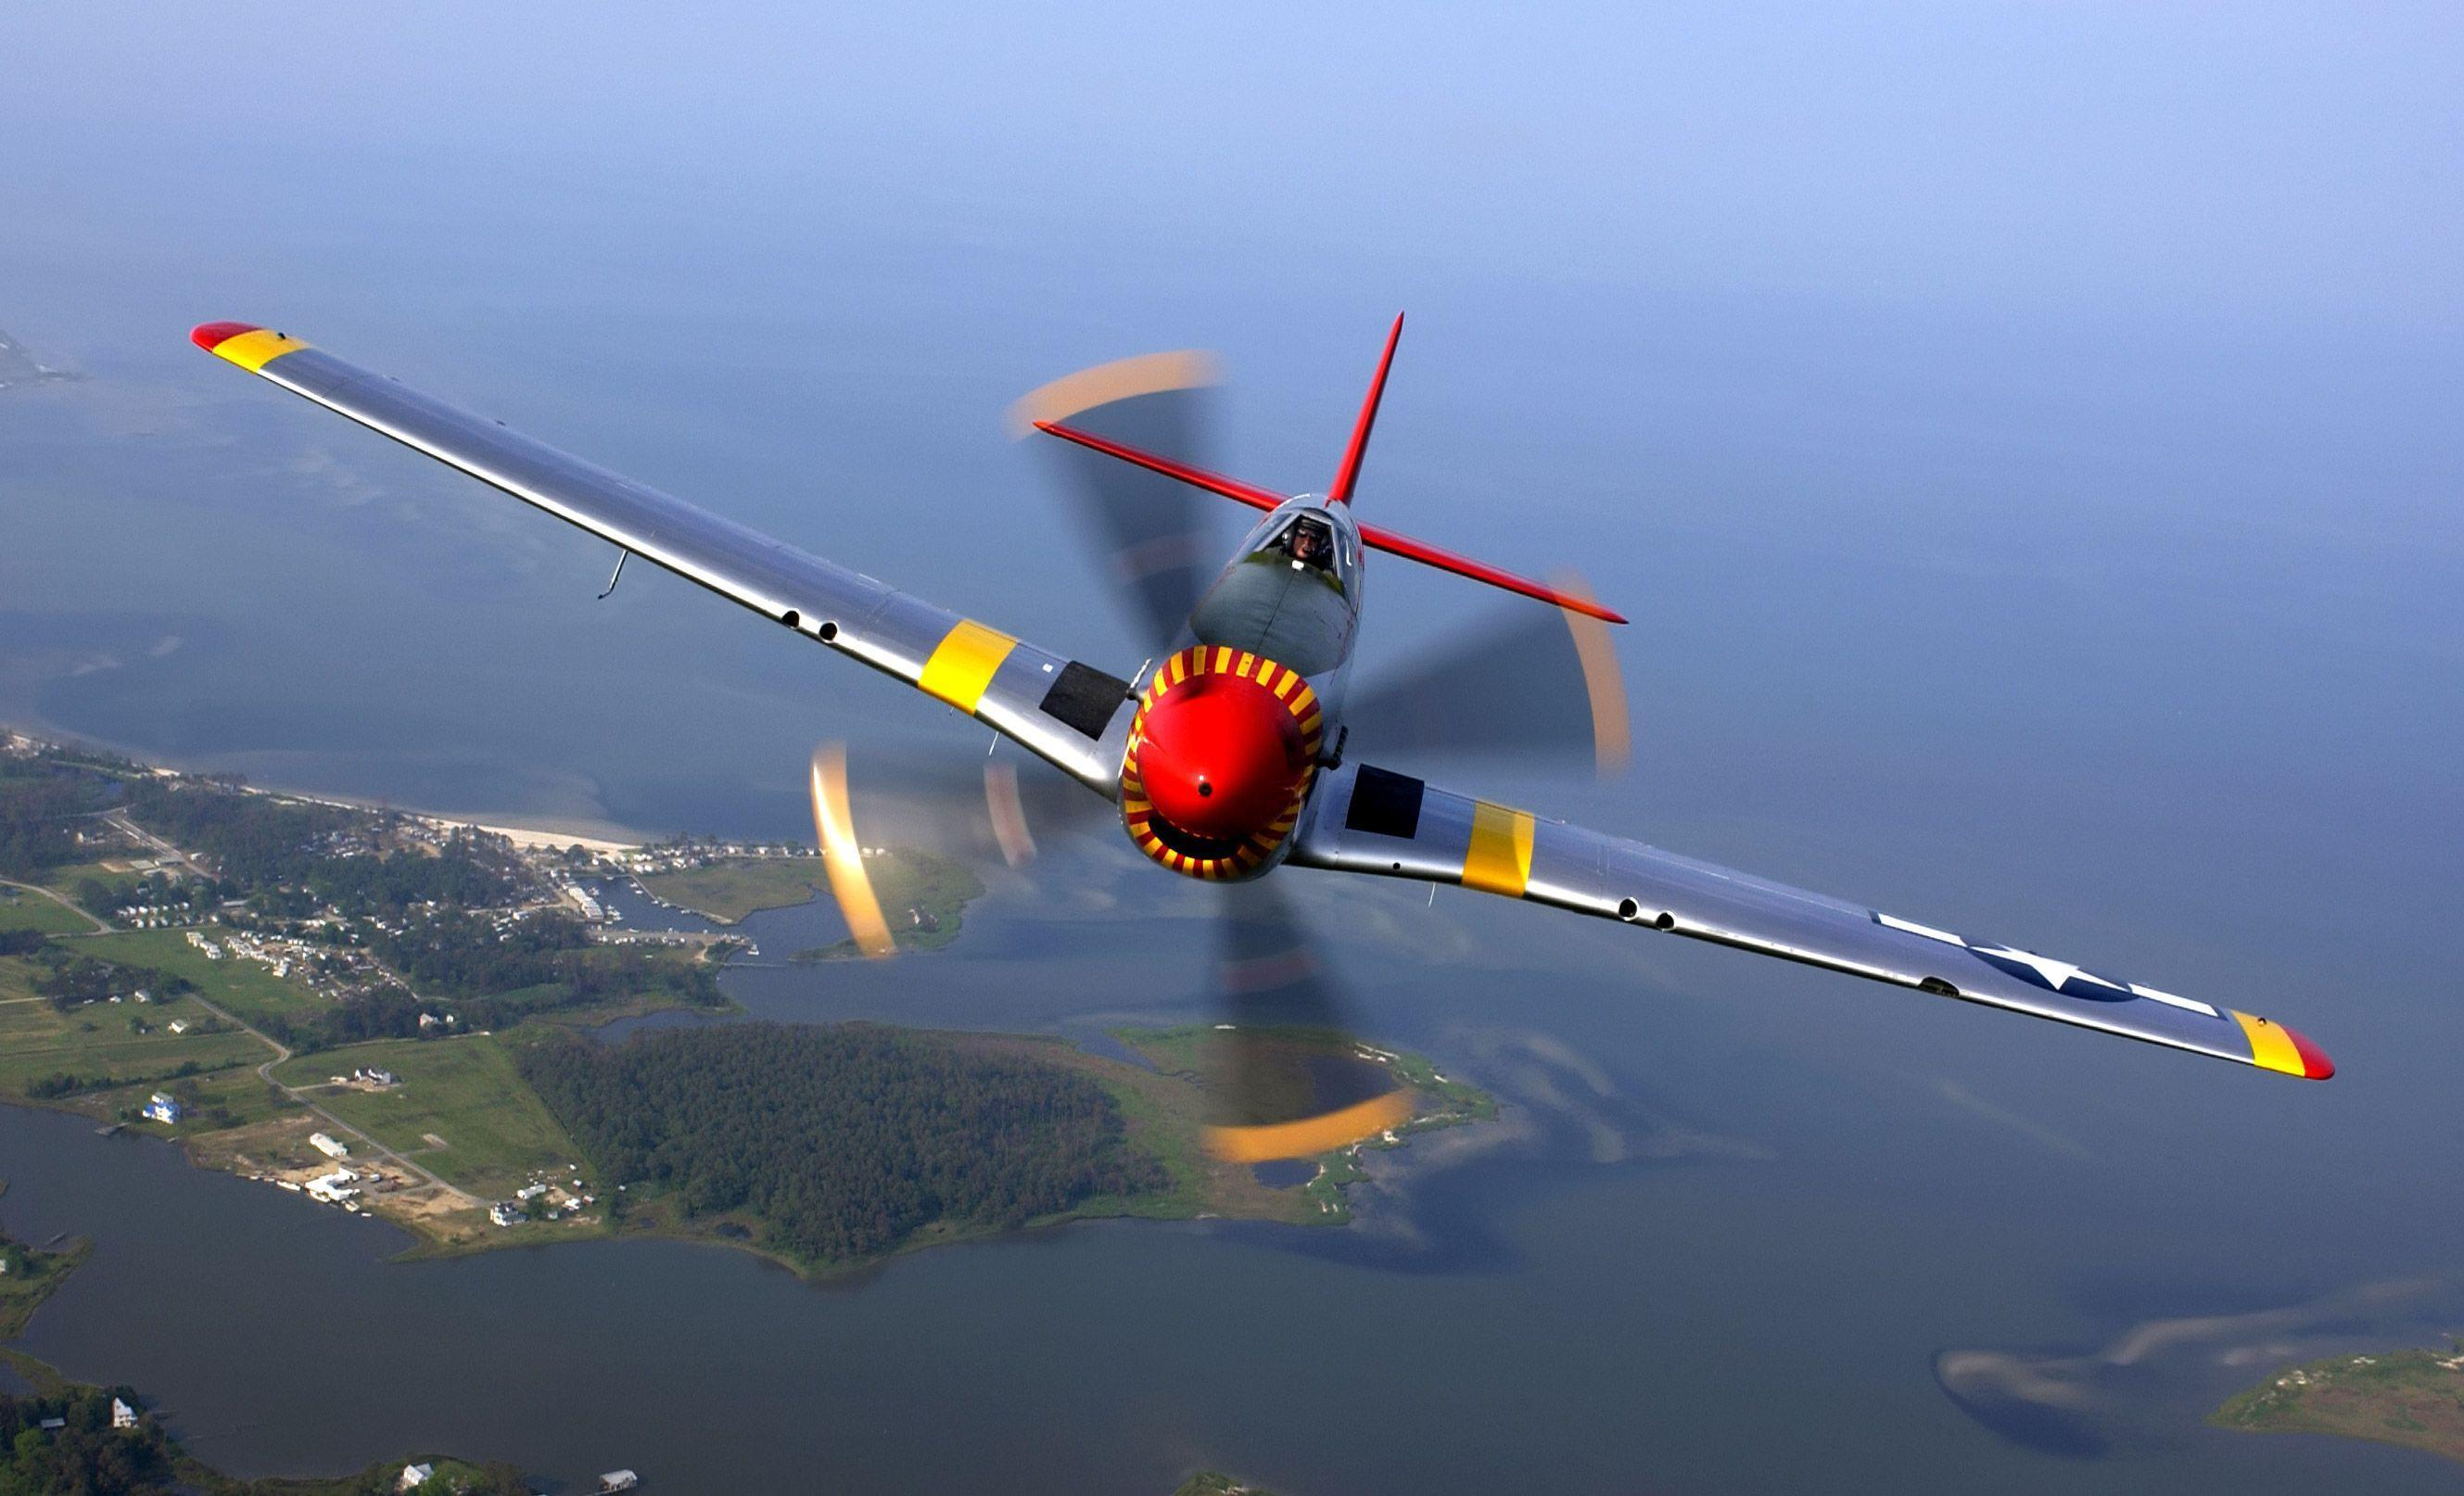 P 51 Mustang Hd Backgrounds Wallpapers 30 HD Wallpapers